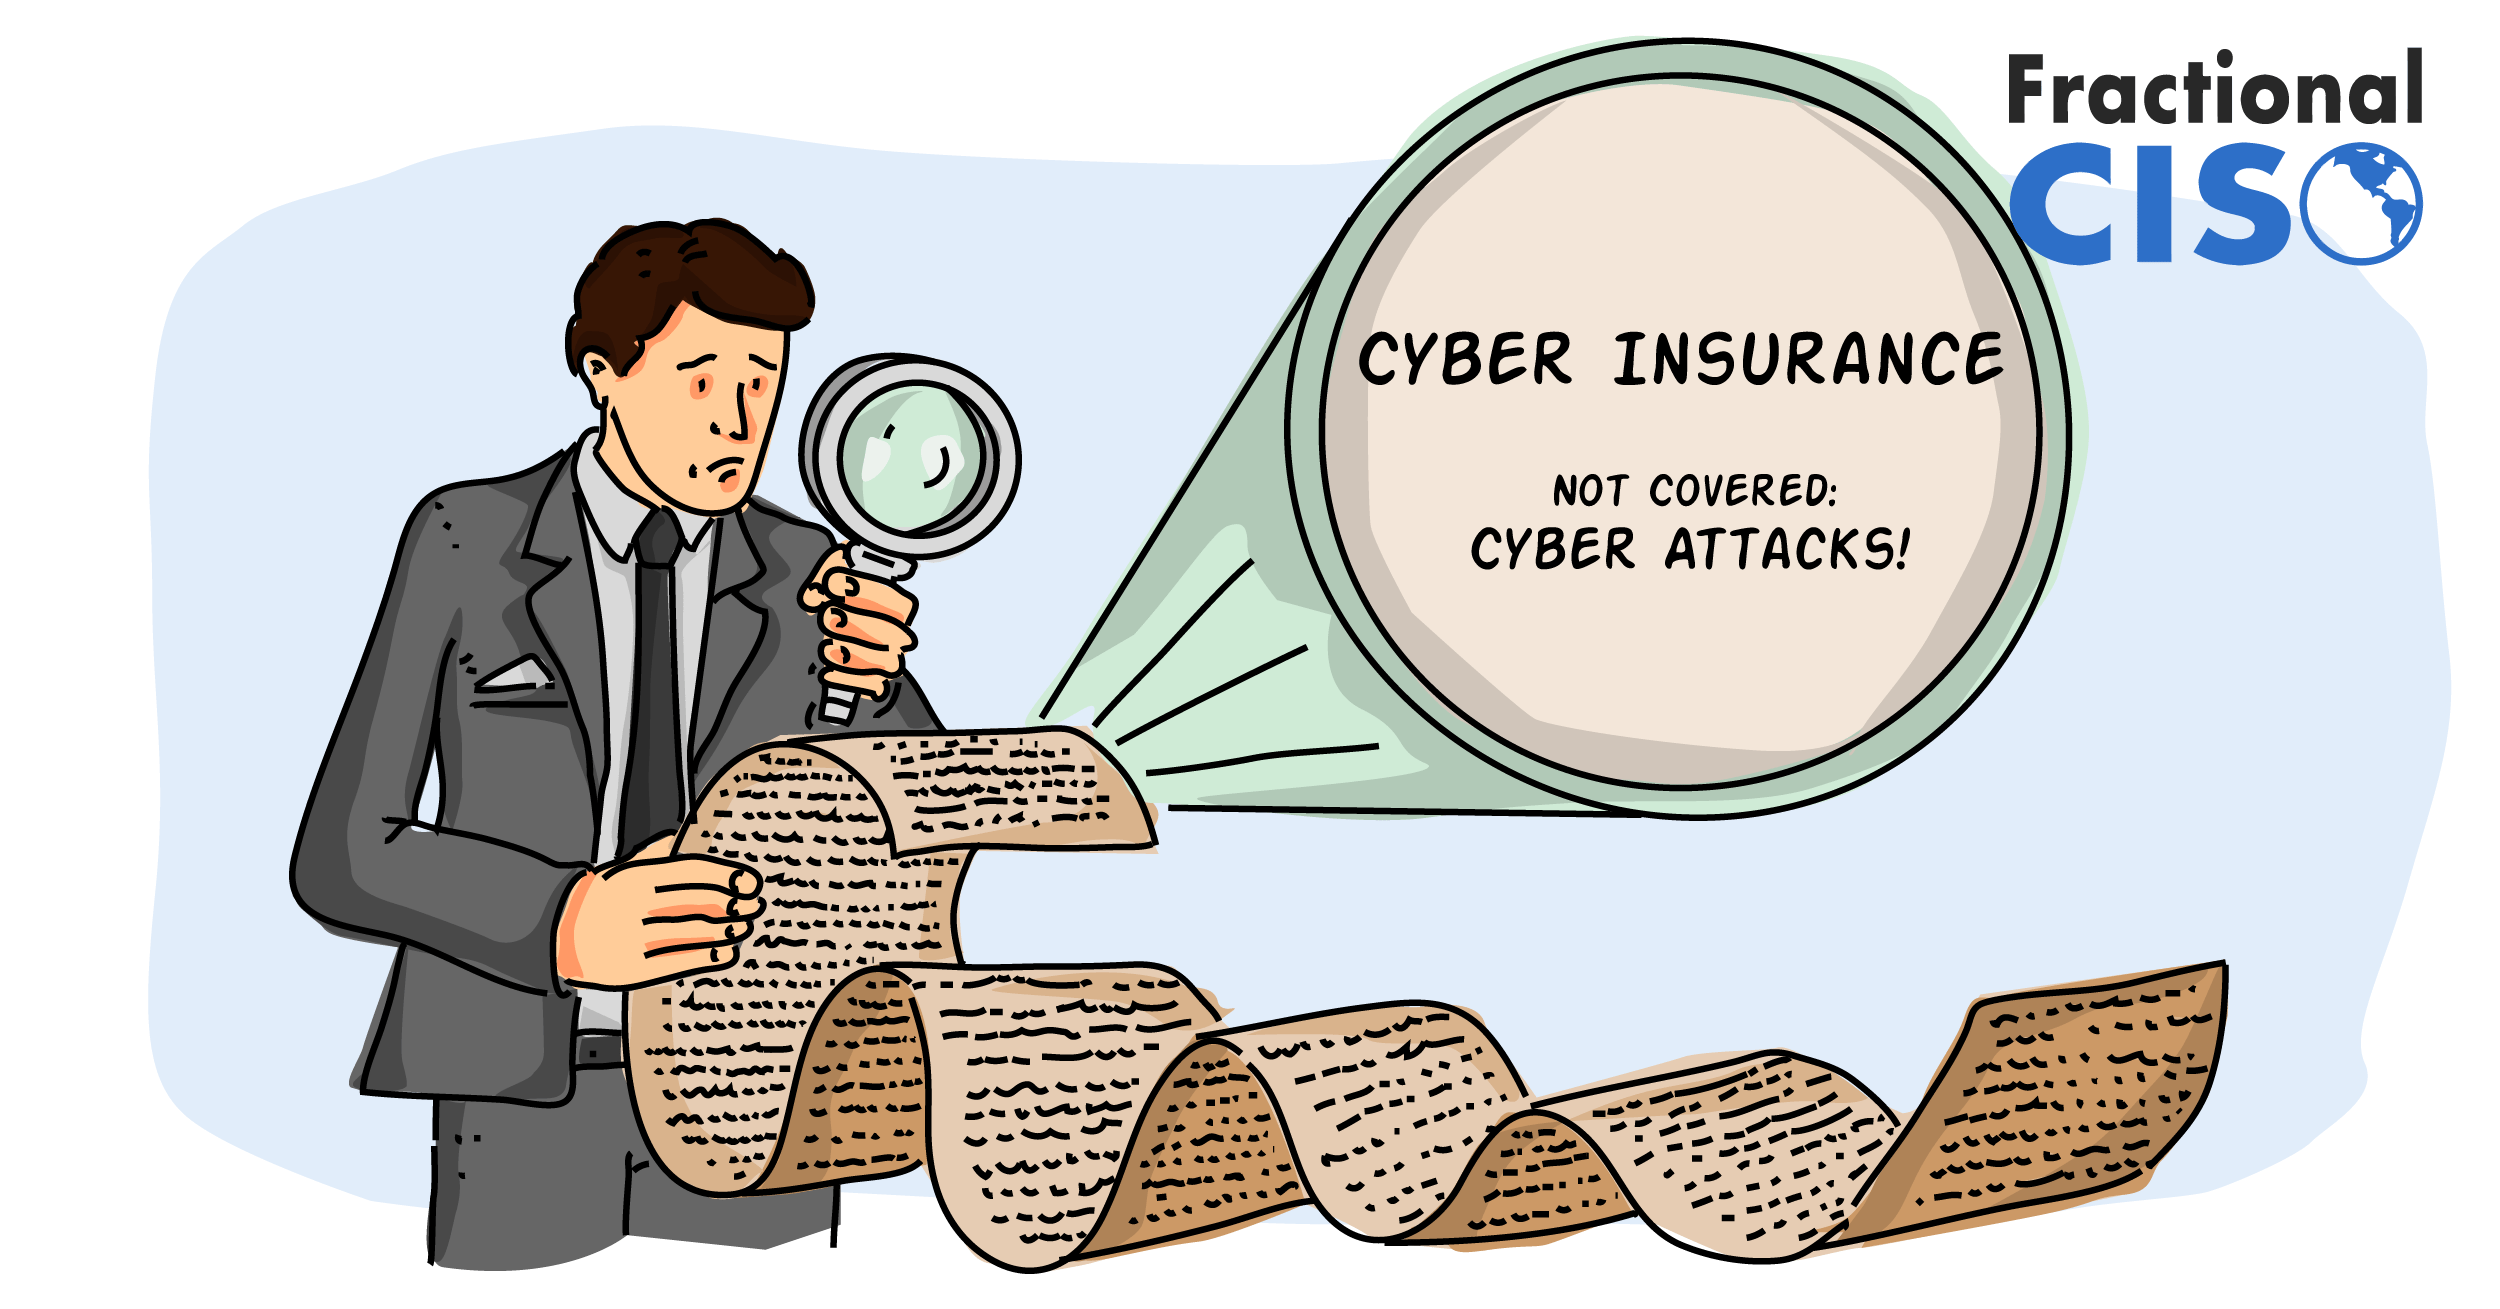 Cyber Insurance - Not Covered: Cyber Attacks!